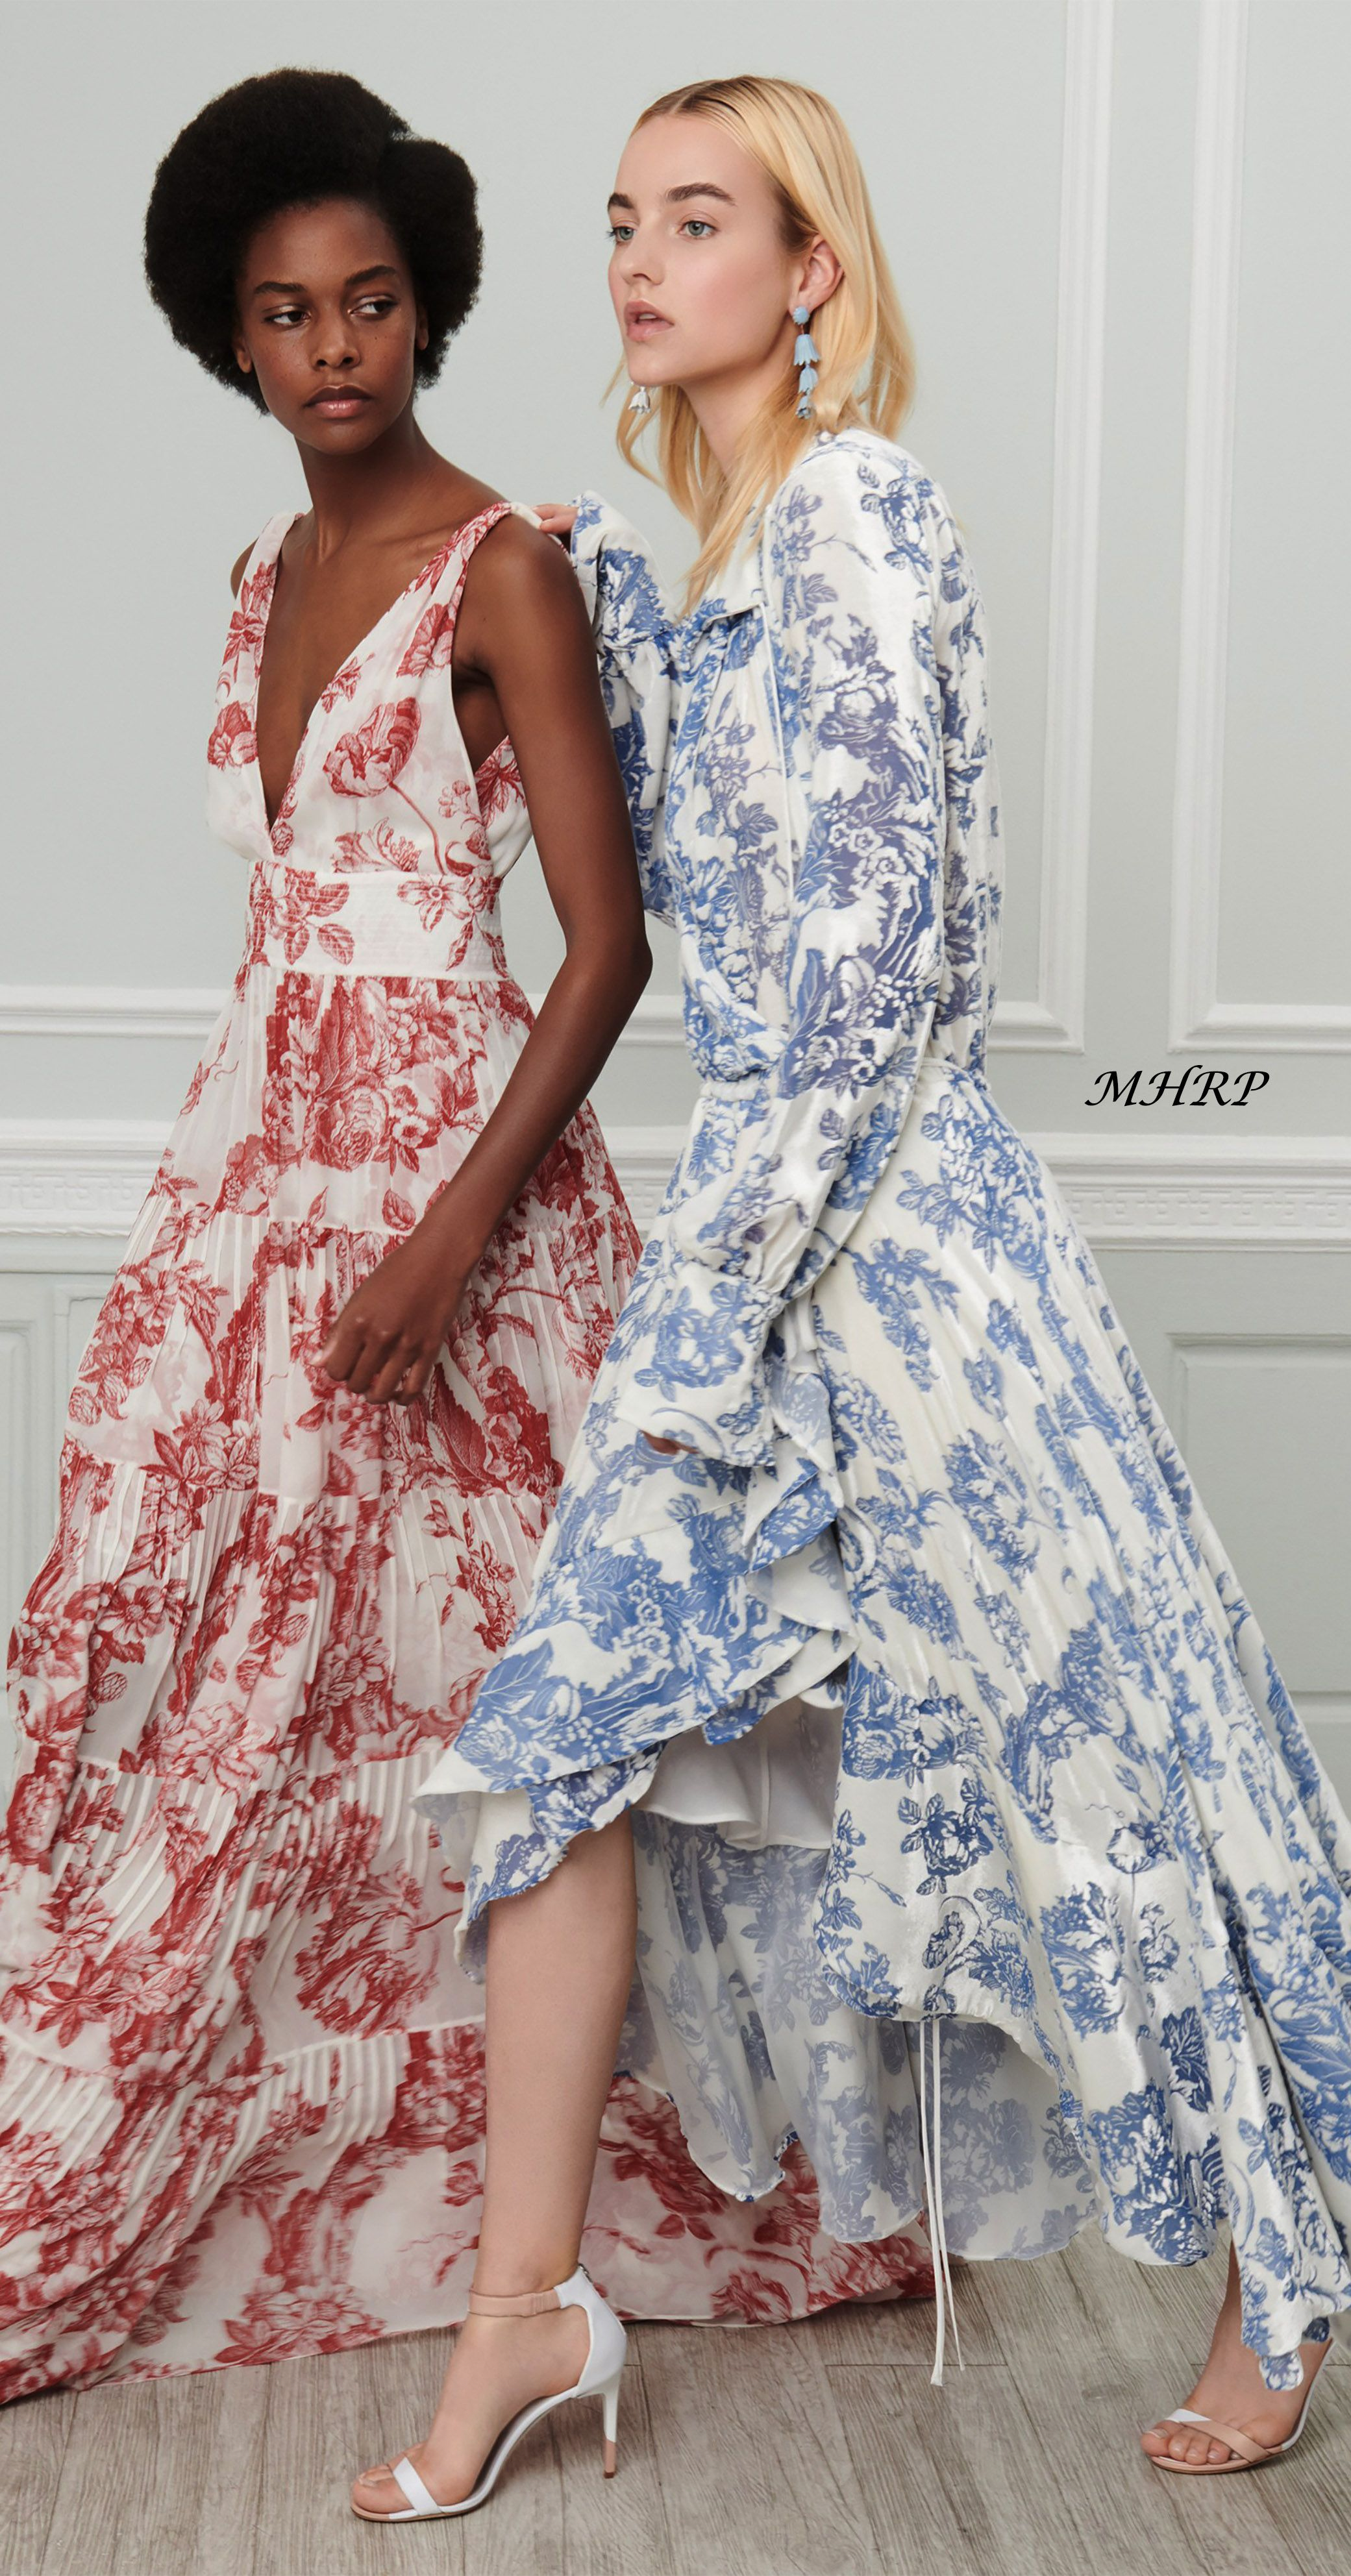 bc55a966bb2a oscar-de-la-renta-vogue-resort-2019